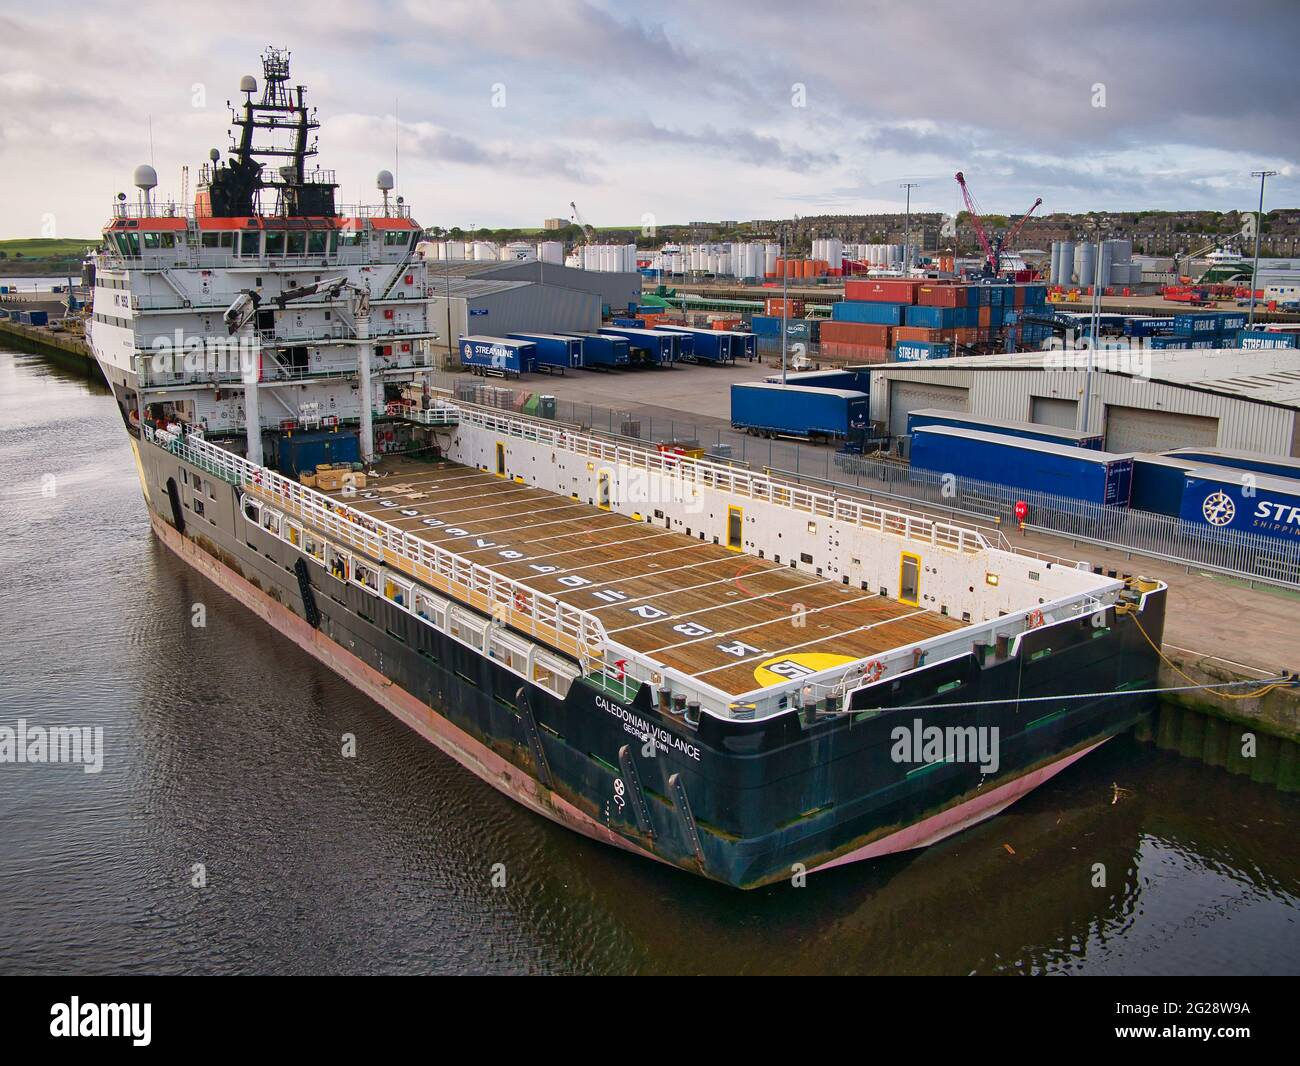 Caledonian Vigilence berthed in the port of Aberdeen, Scotland, UK - this ship is an Offshore Tug and Supply Ship built in 2006. Stock Photo